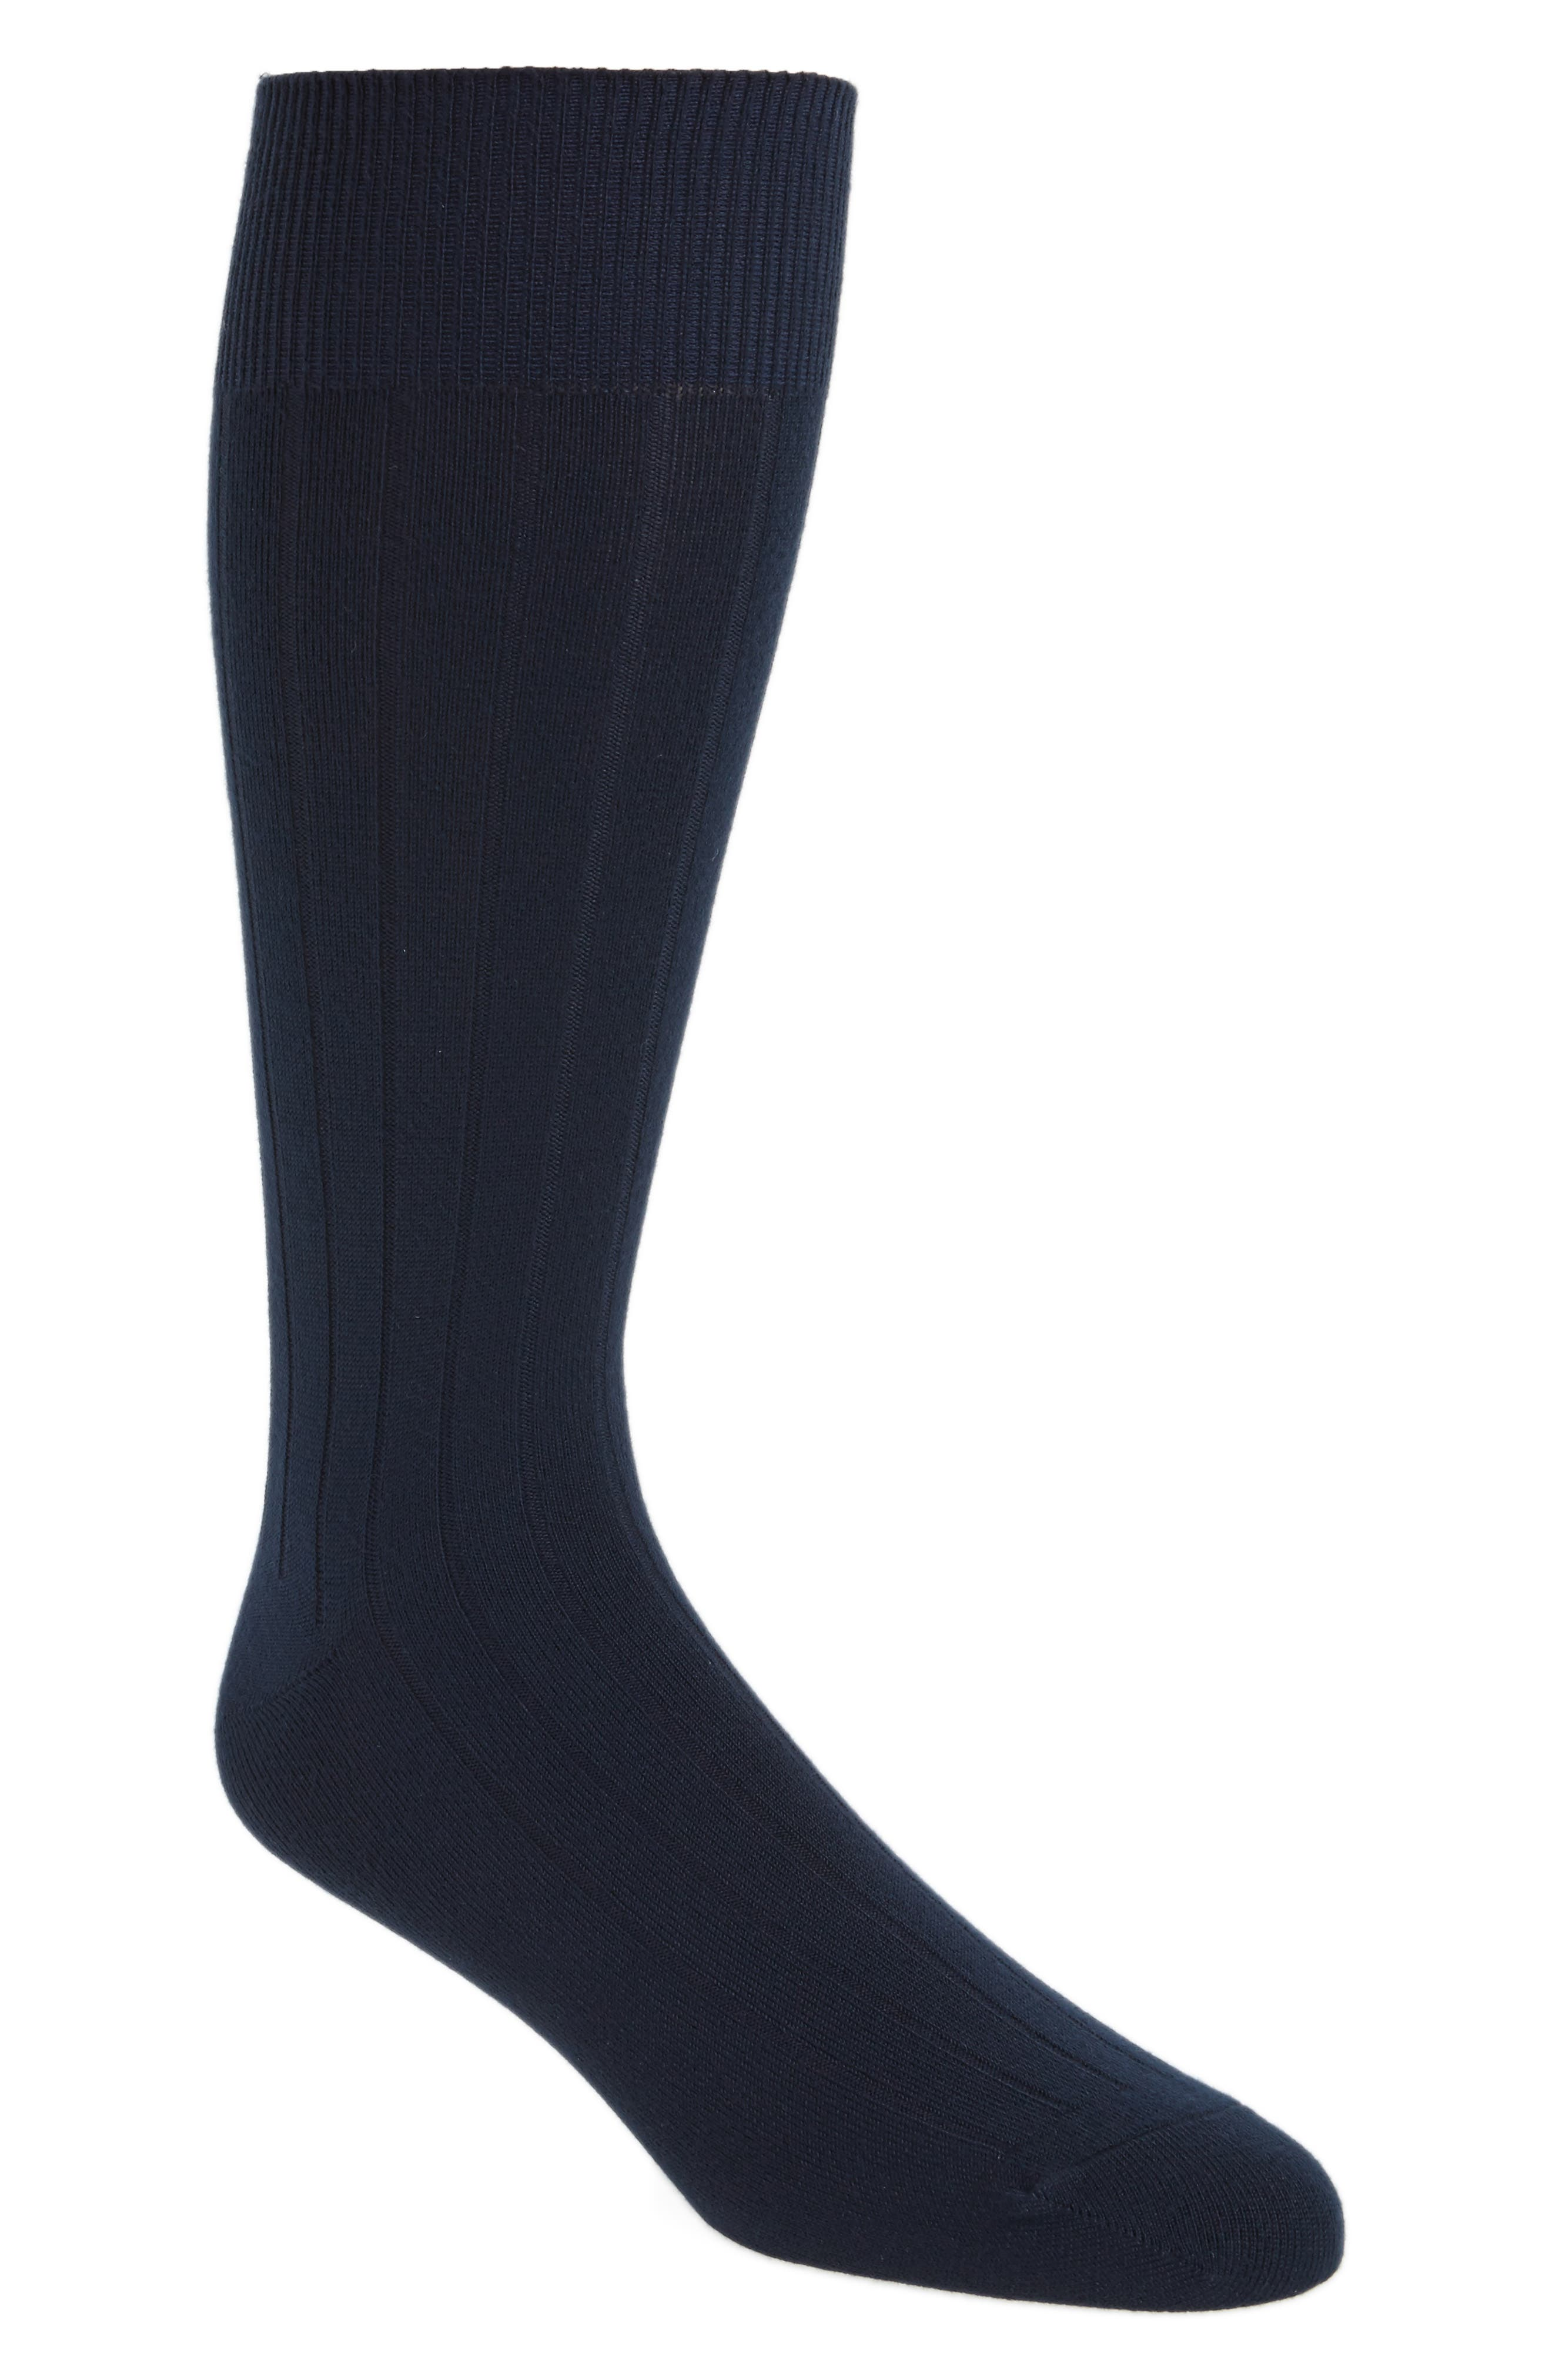 Alternate Image 1 Selected - Nordstrom Men's Shop Ultra Soft Solid Ribbed Socks (3 for $30)